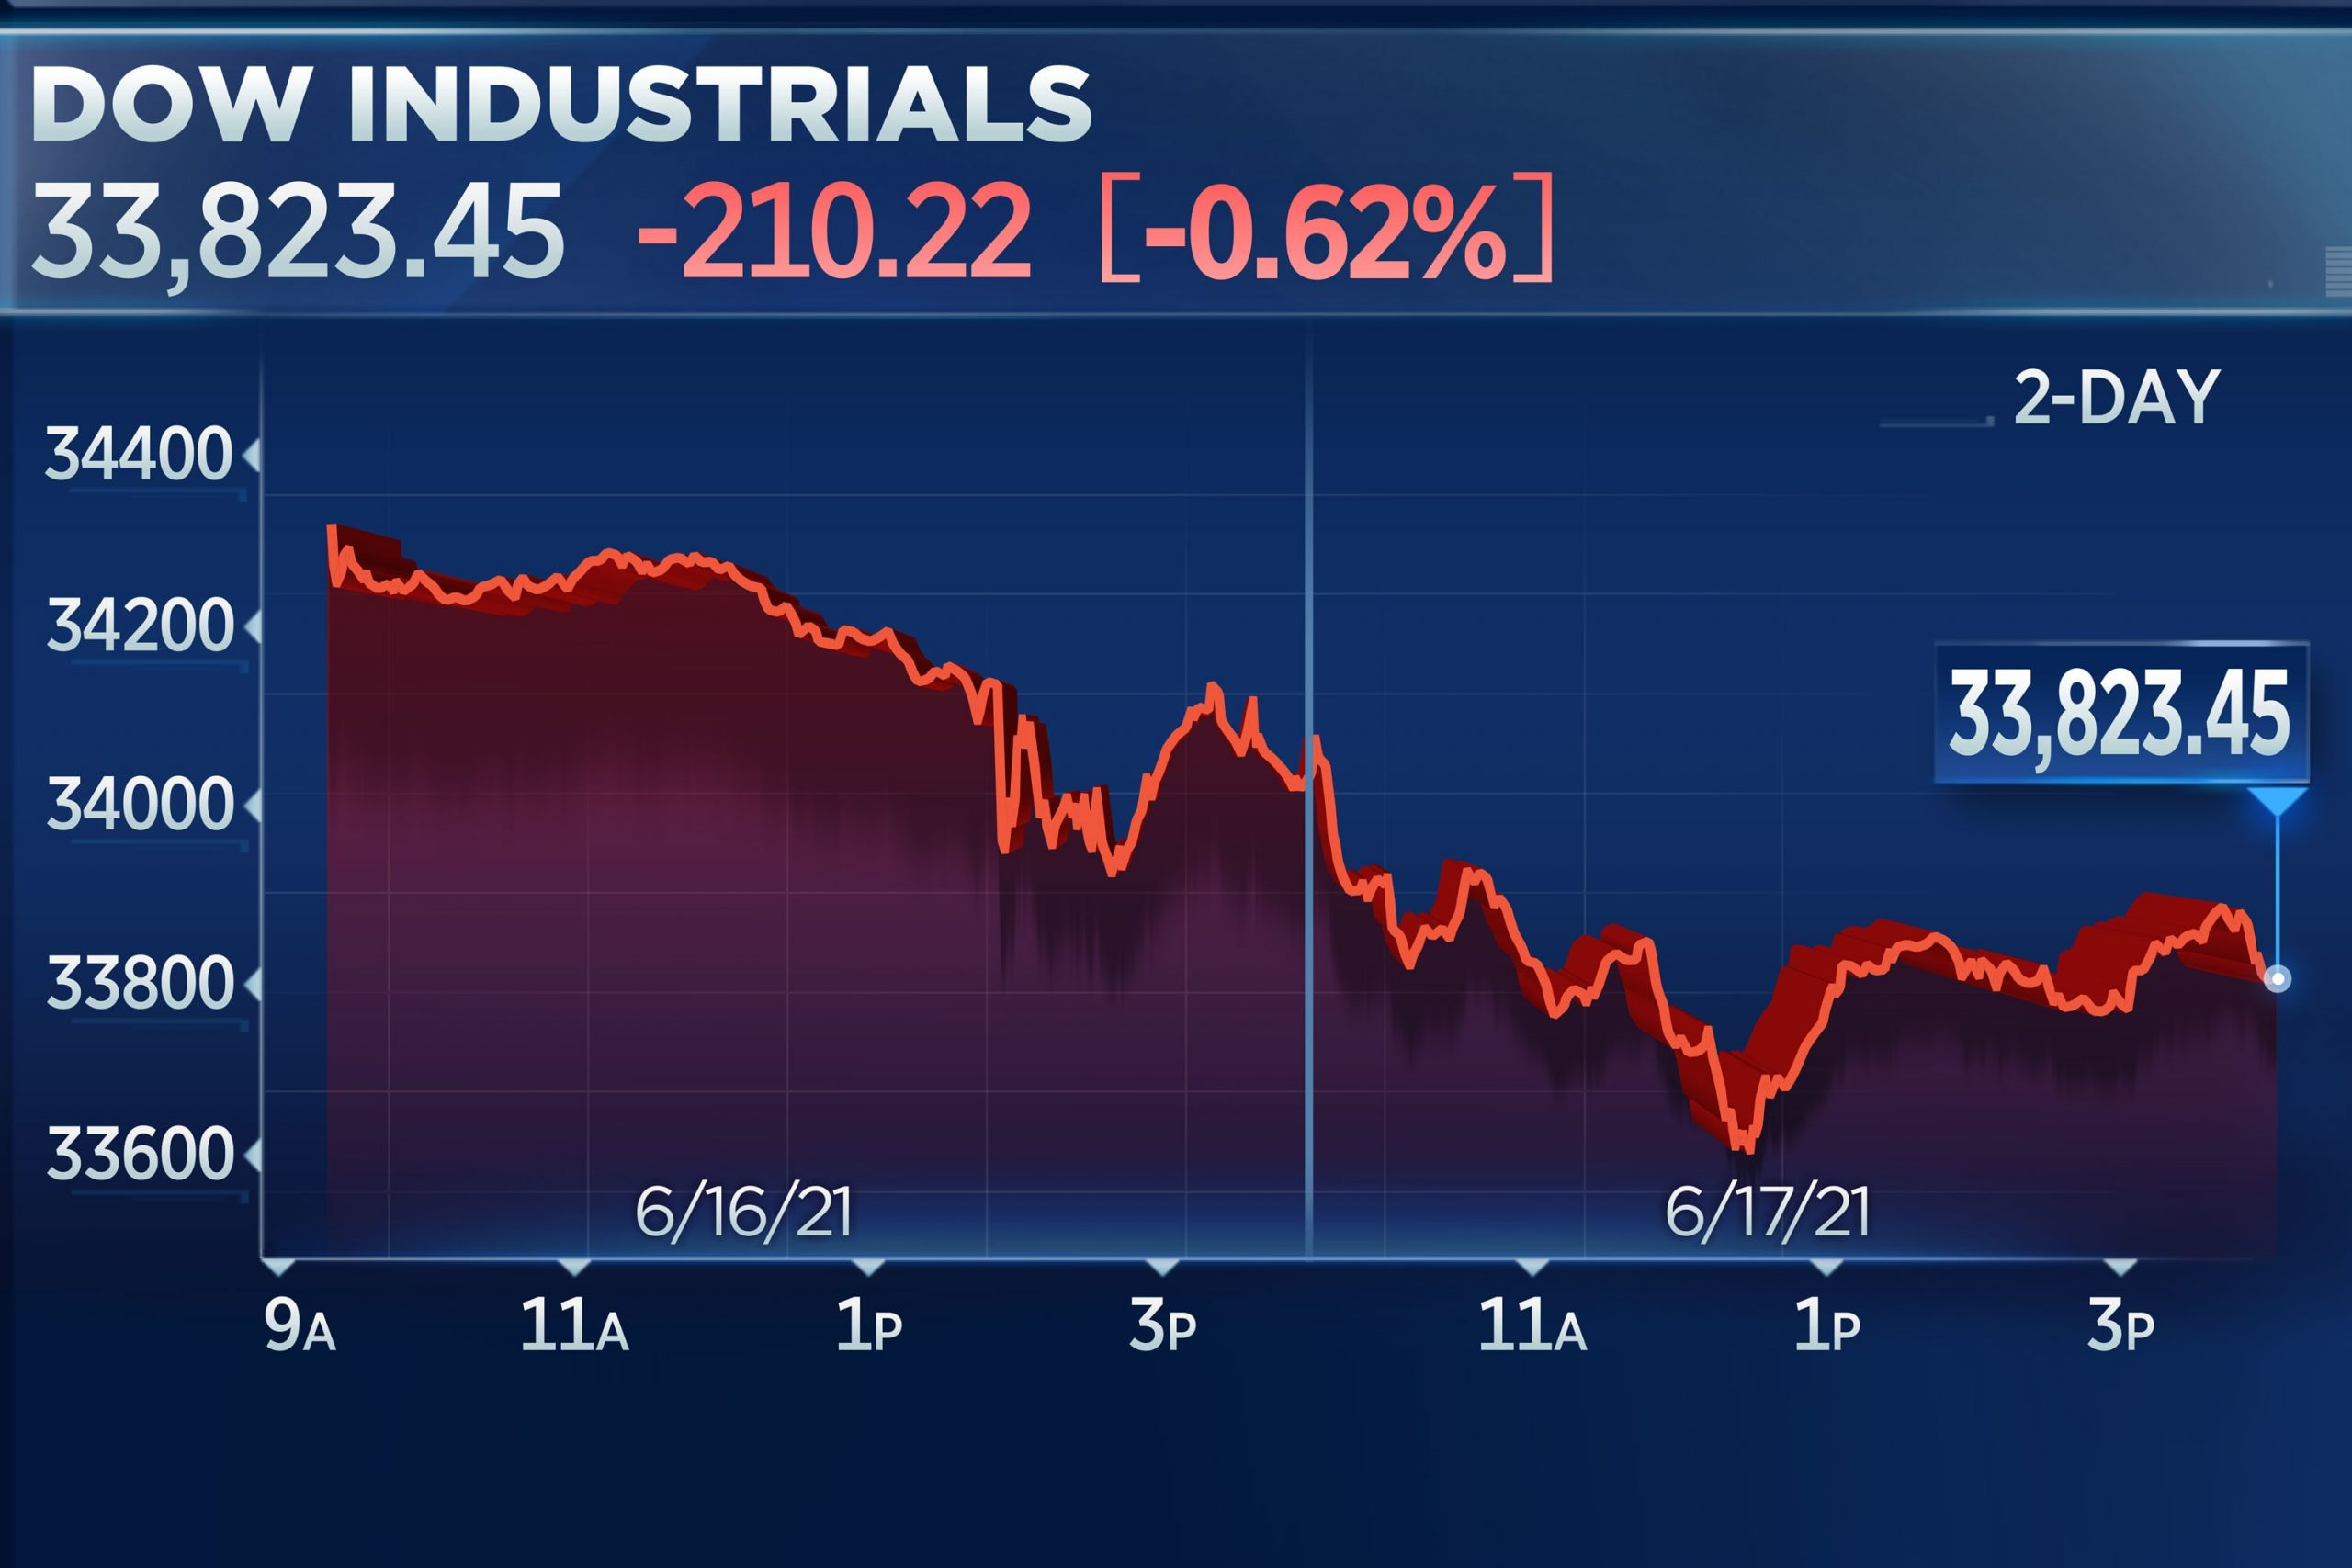 Dow falls for a second day following Fed policy update, loses 210 points